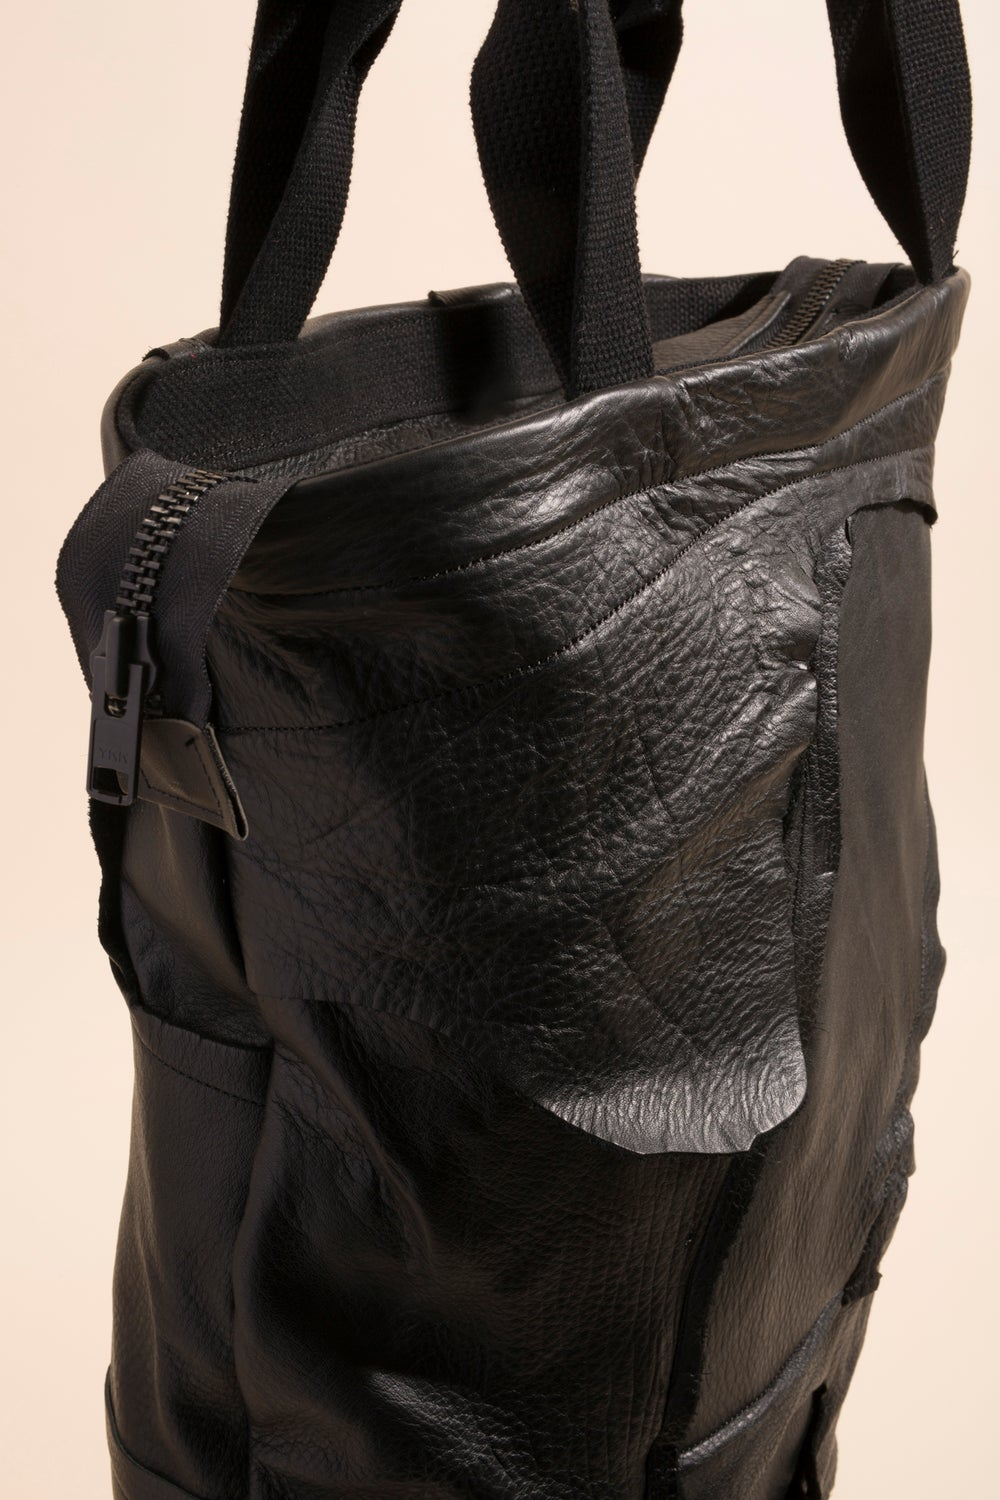 Image of Zipper Tote - Patchwork Leather